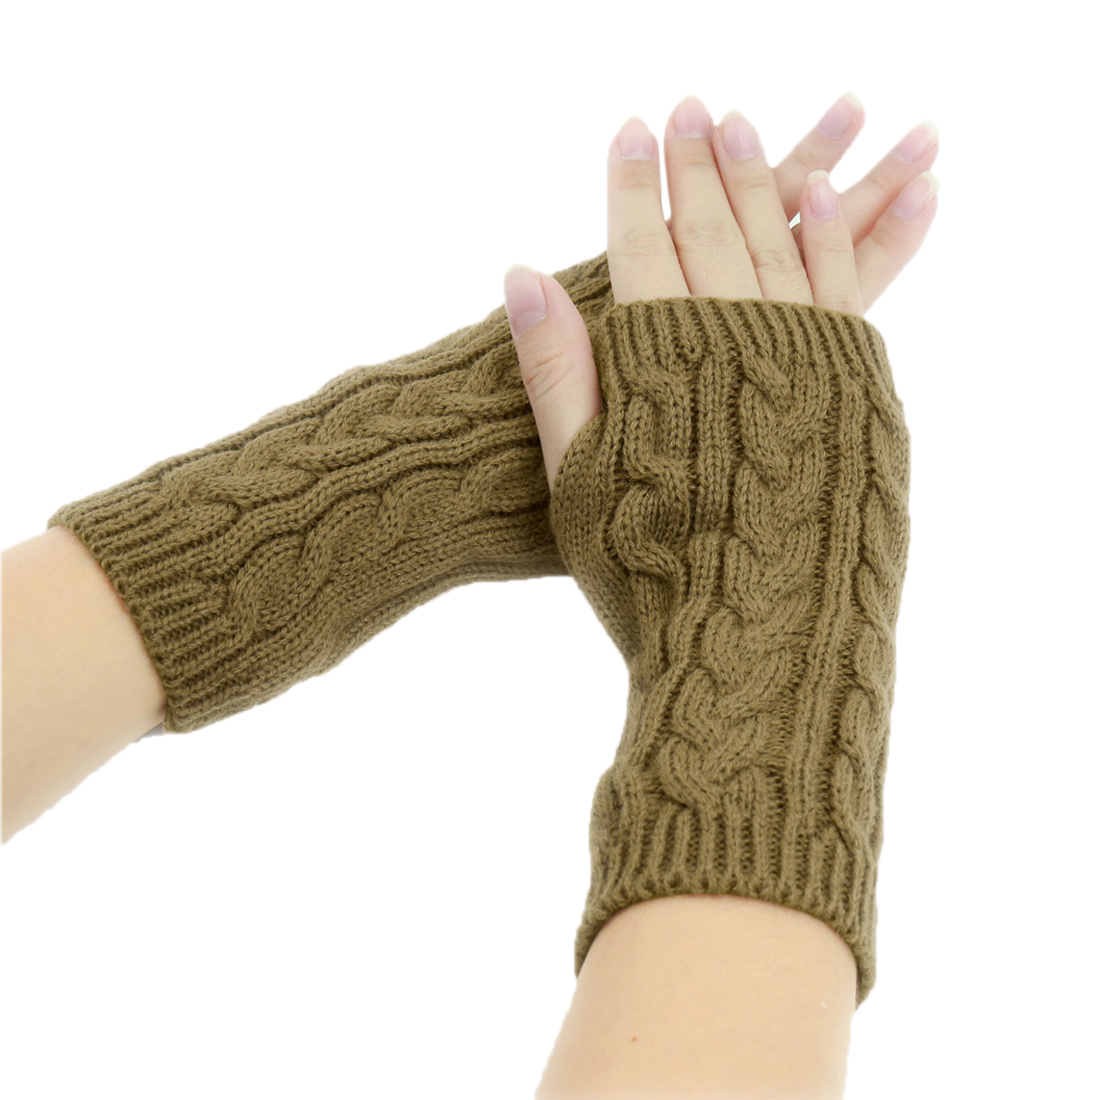 Tasharina Unisex Thumbhole Fingerless Cable Knit Knitted Gloves Brown